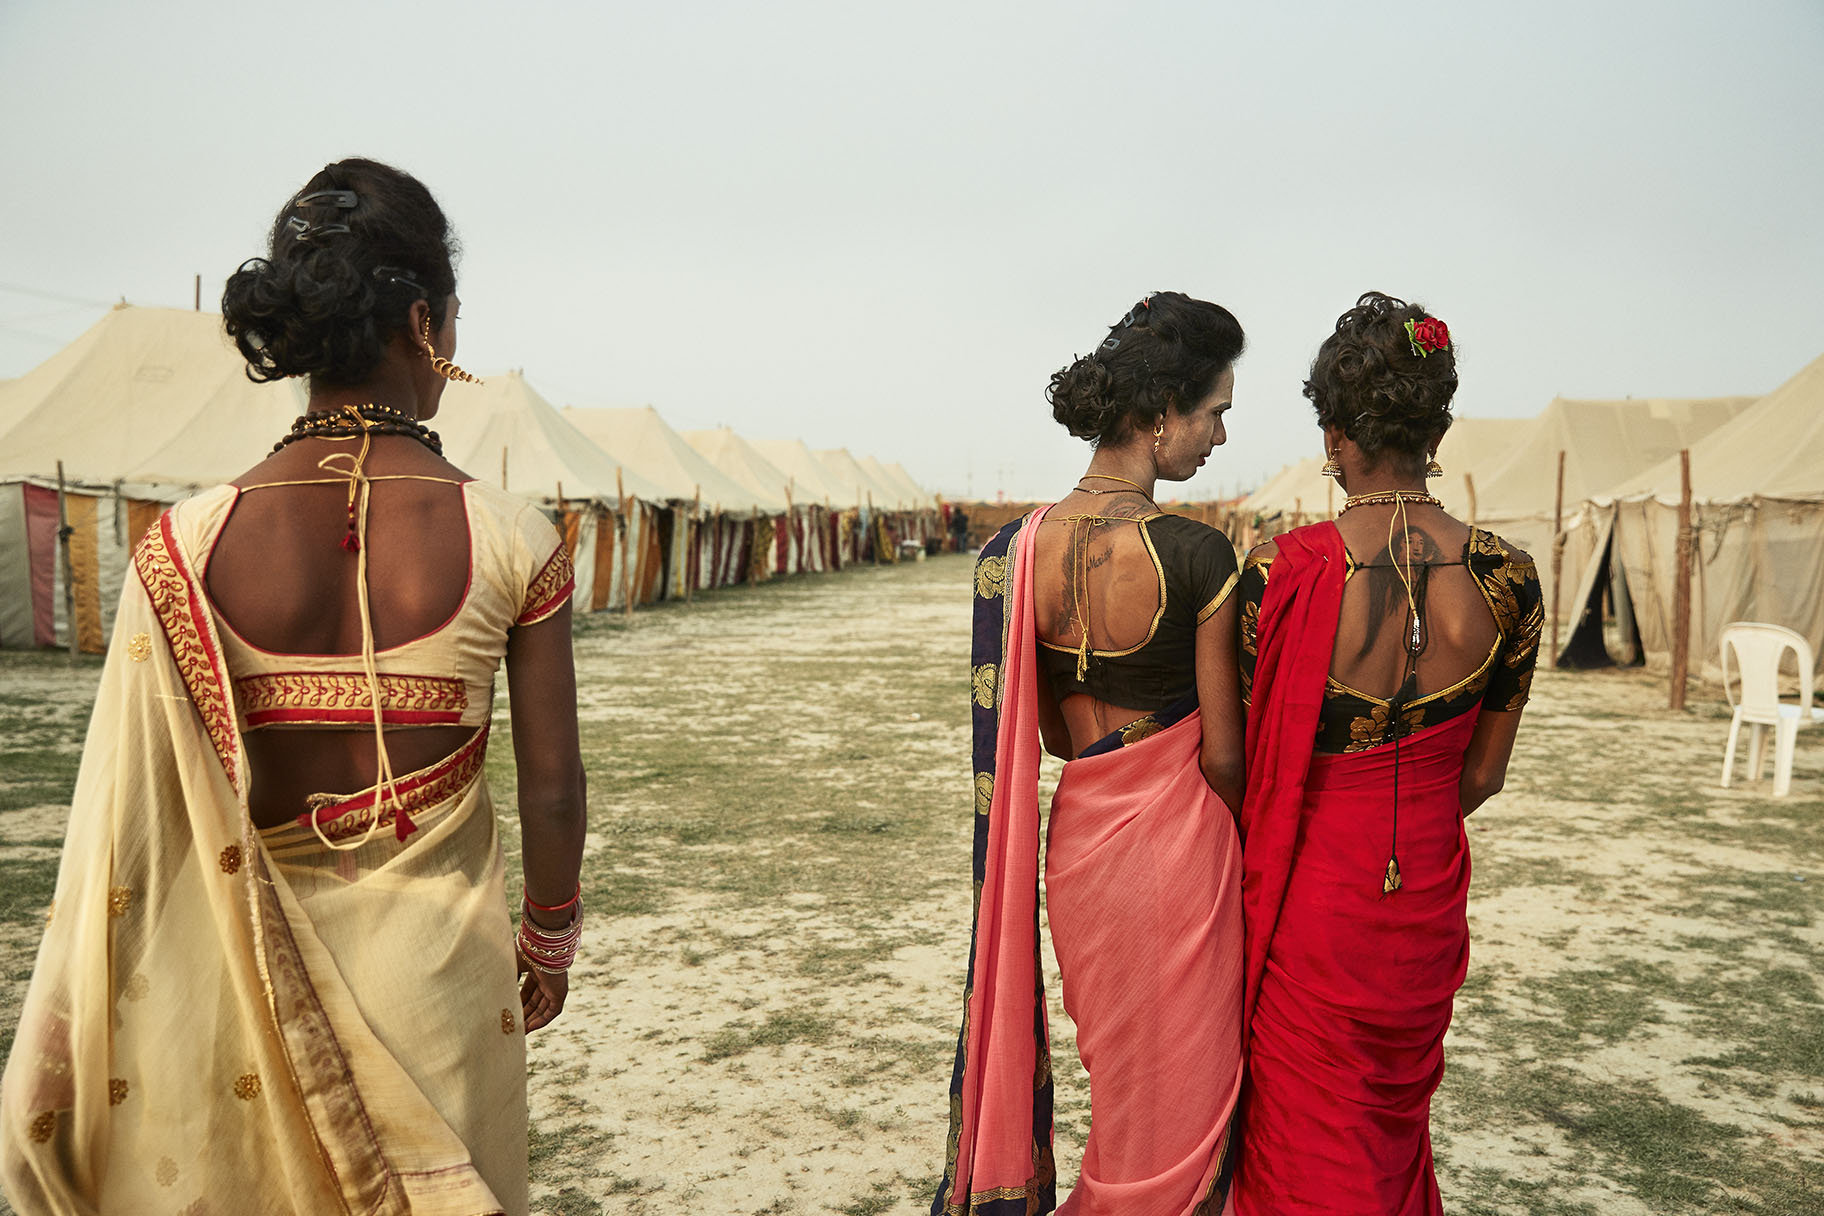 A sacred festival with India's trans spiritual leaders